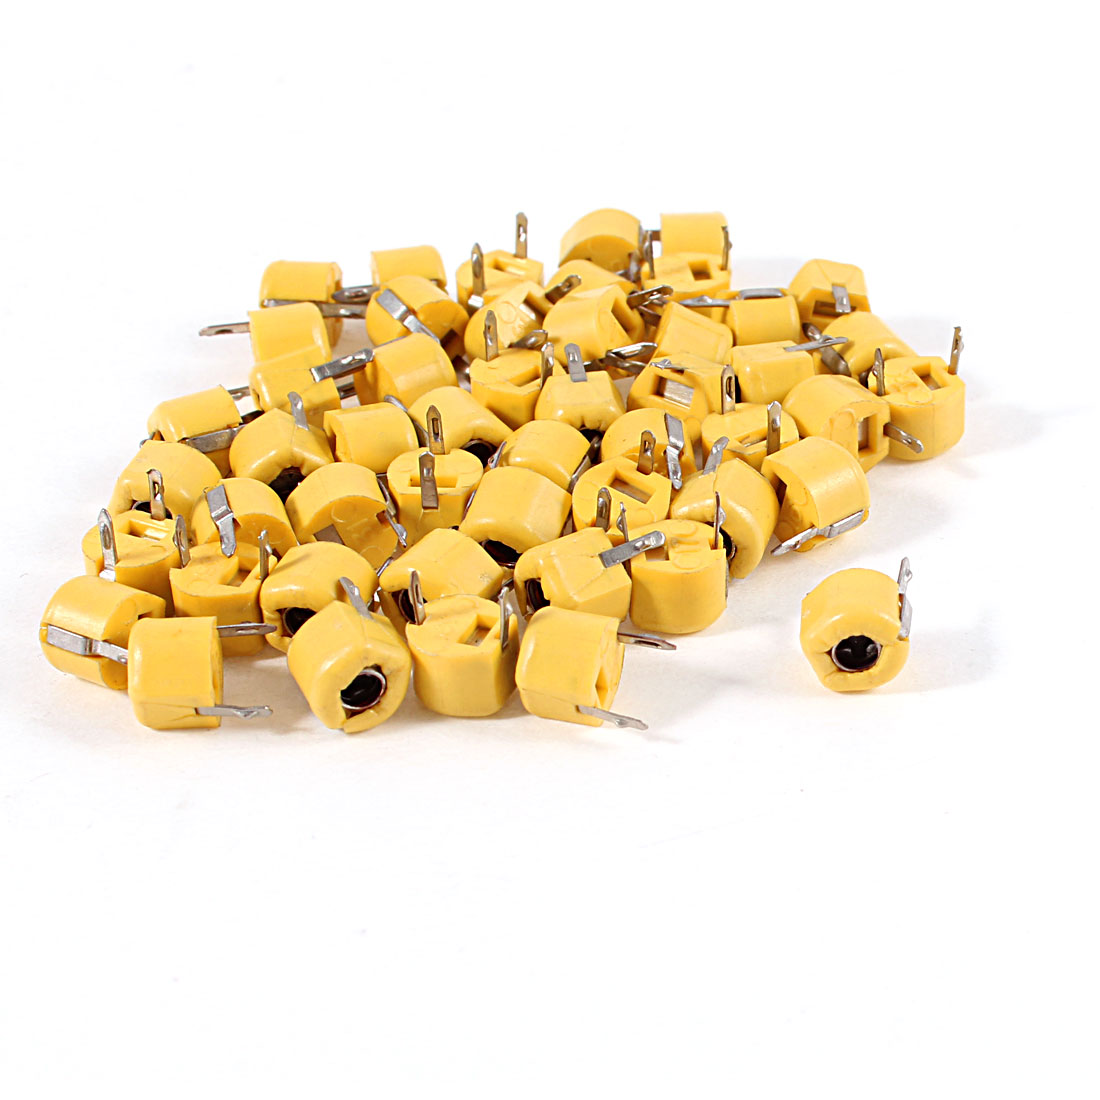 50 Pcs 6mm Through Hole Trimmer Variable Capacitors 40pF Yellow